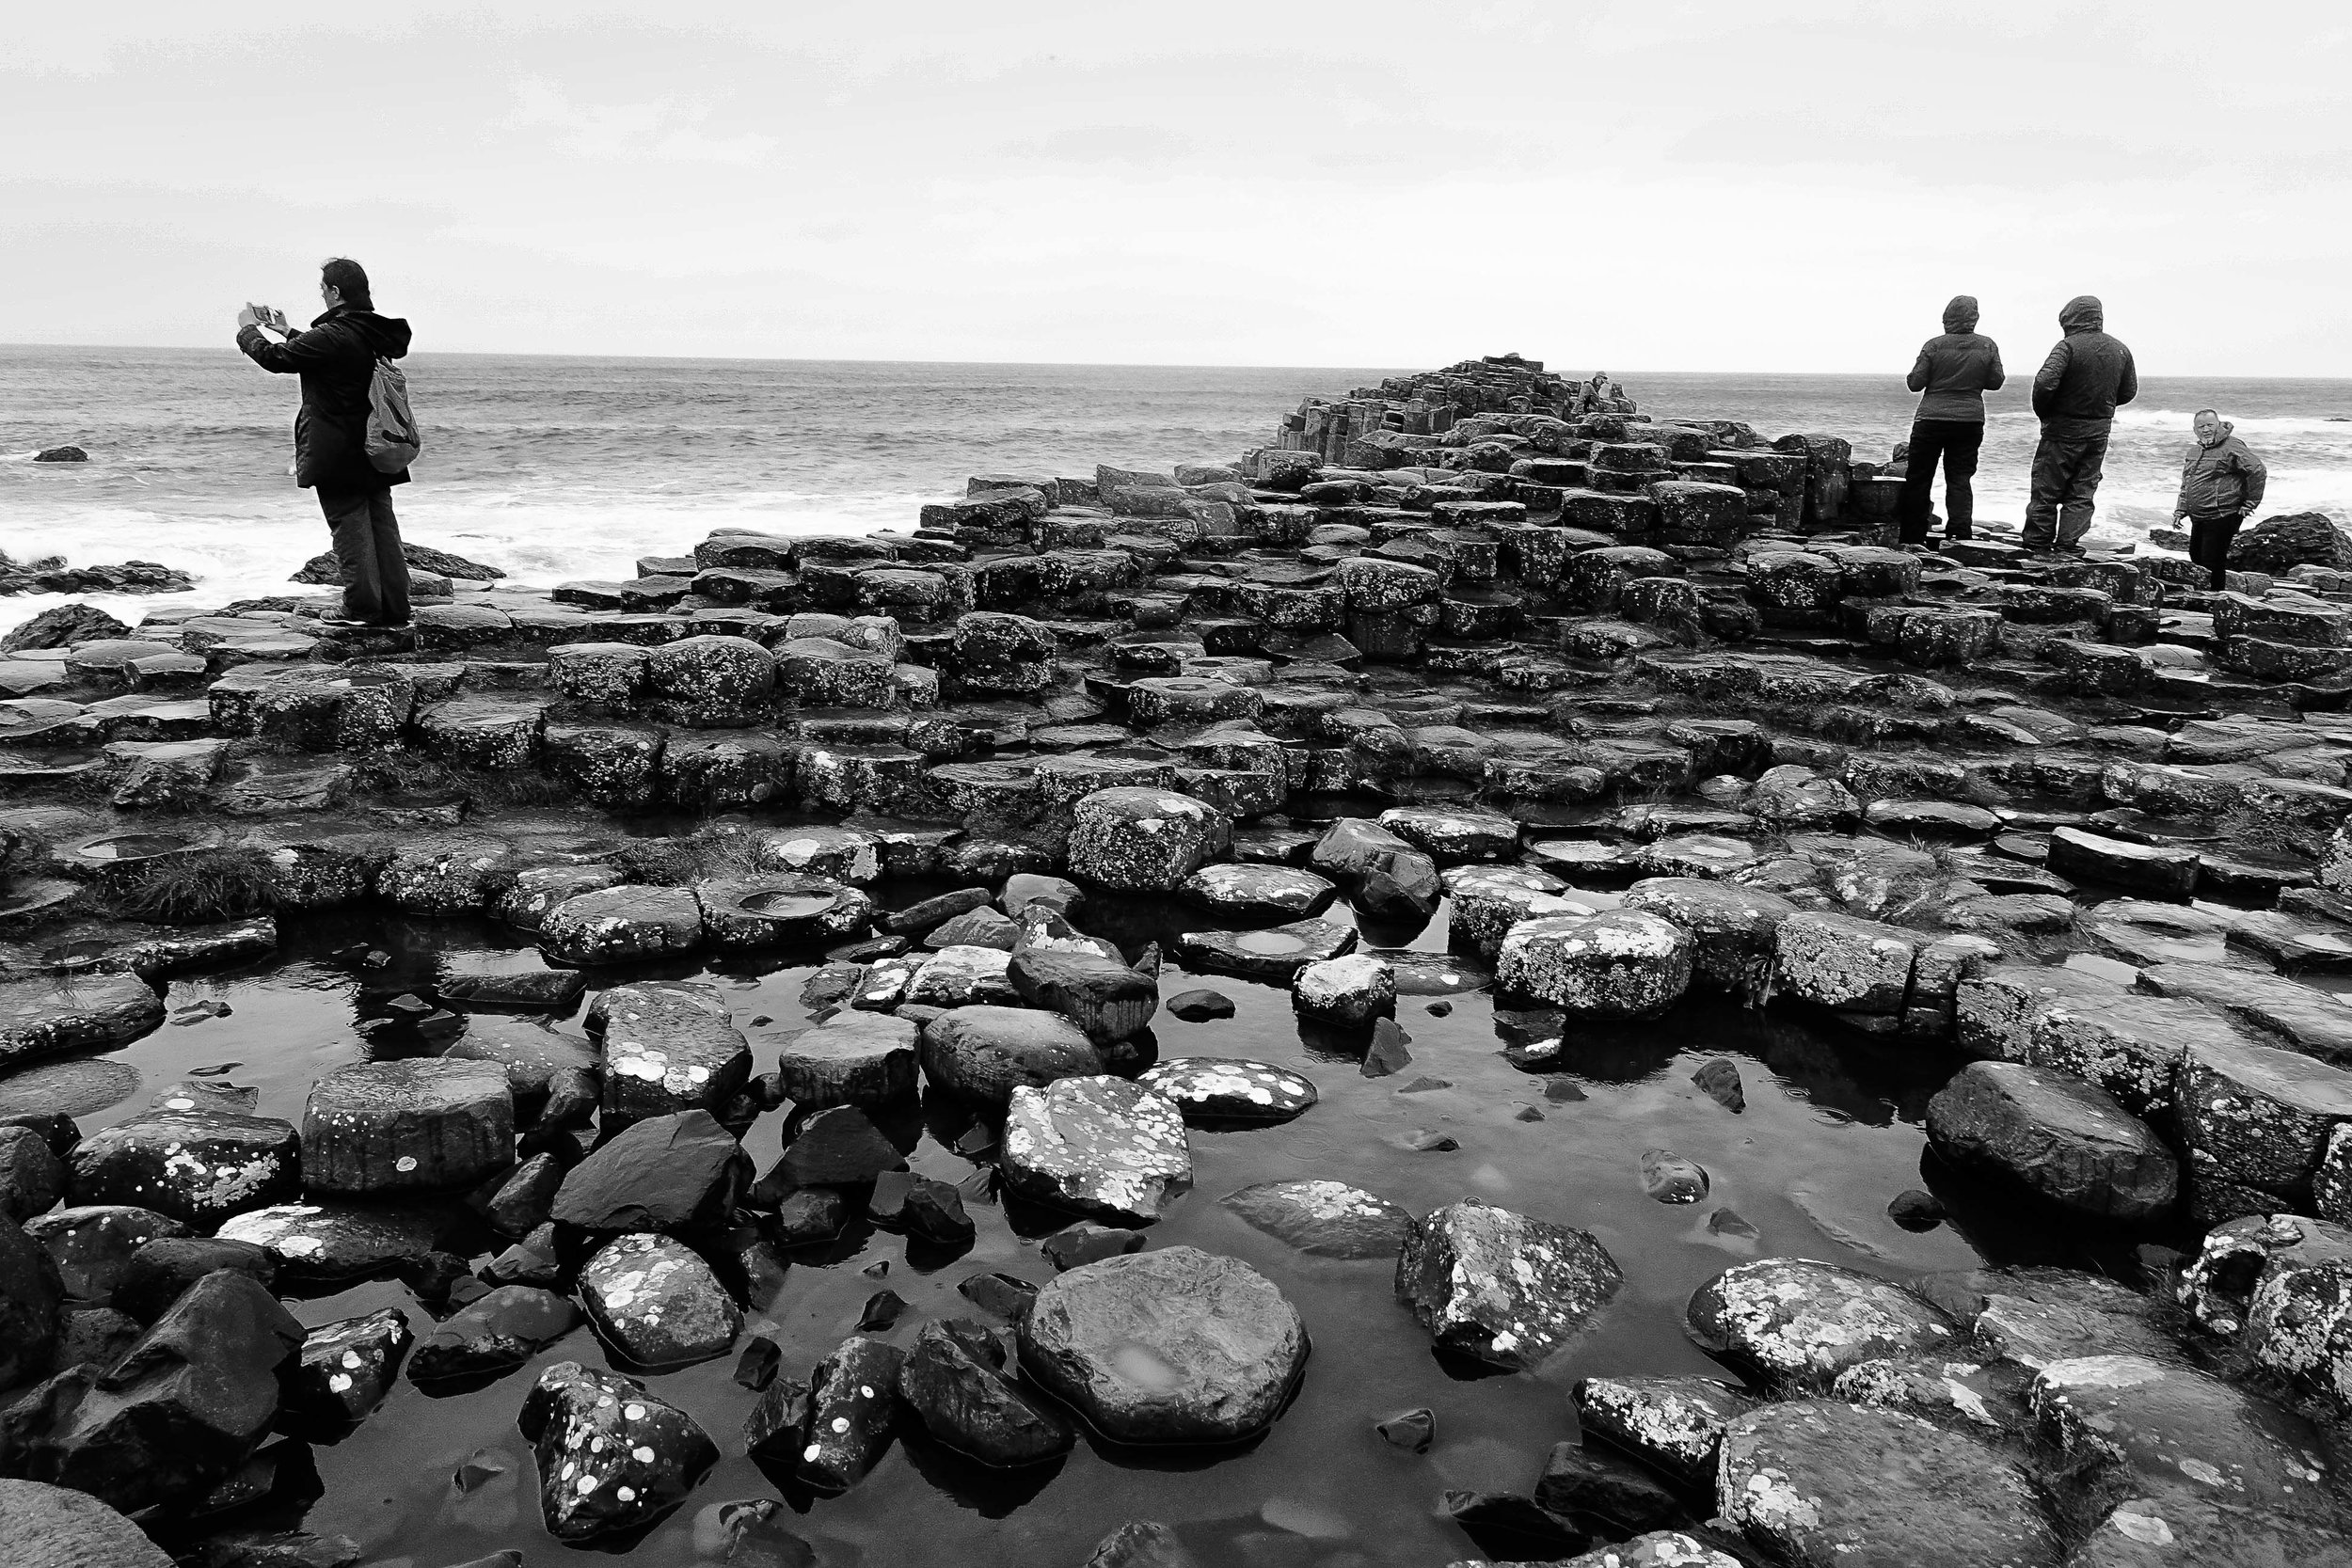 Giants Causeway - N. Ireland (Sony Rx100 IV - 1/80th, f5.6, ISO 400)